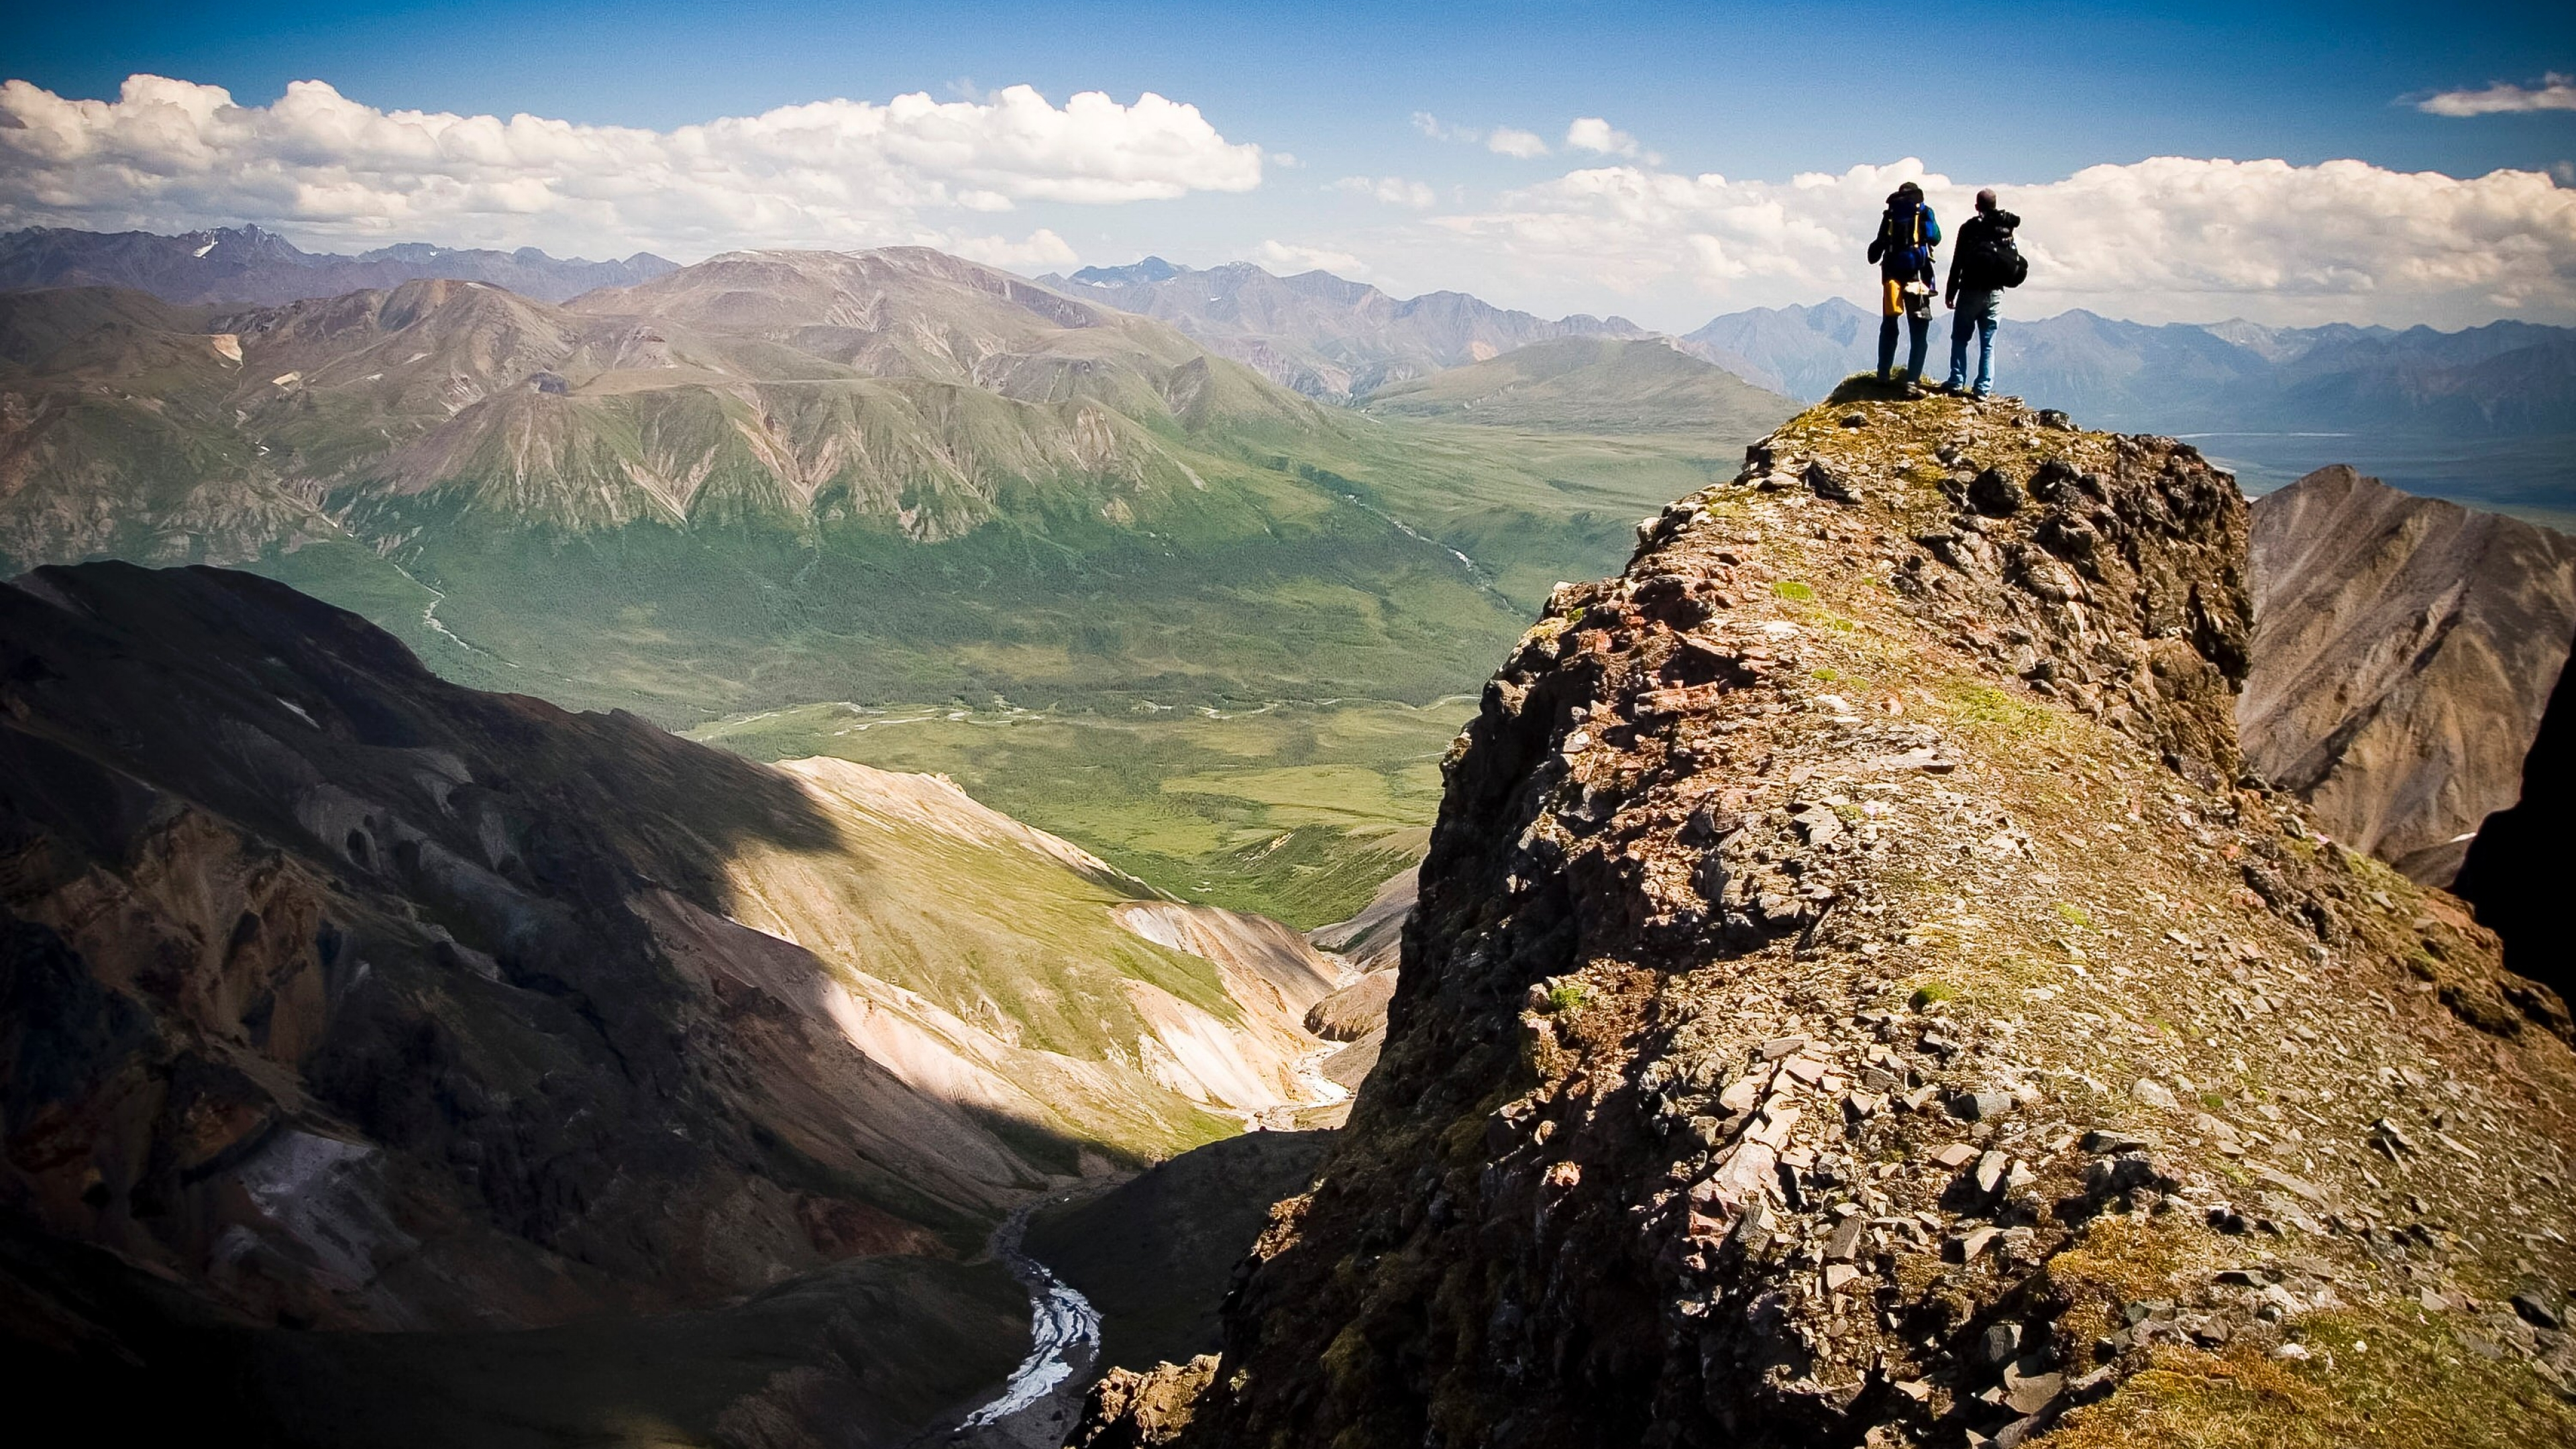 Two backpackers overlooking a valley on the Rambler Mine Route at Wrangell St.-Elias National Park & Preserve